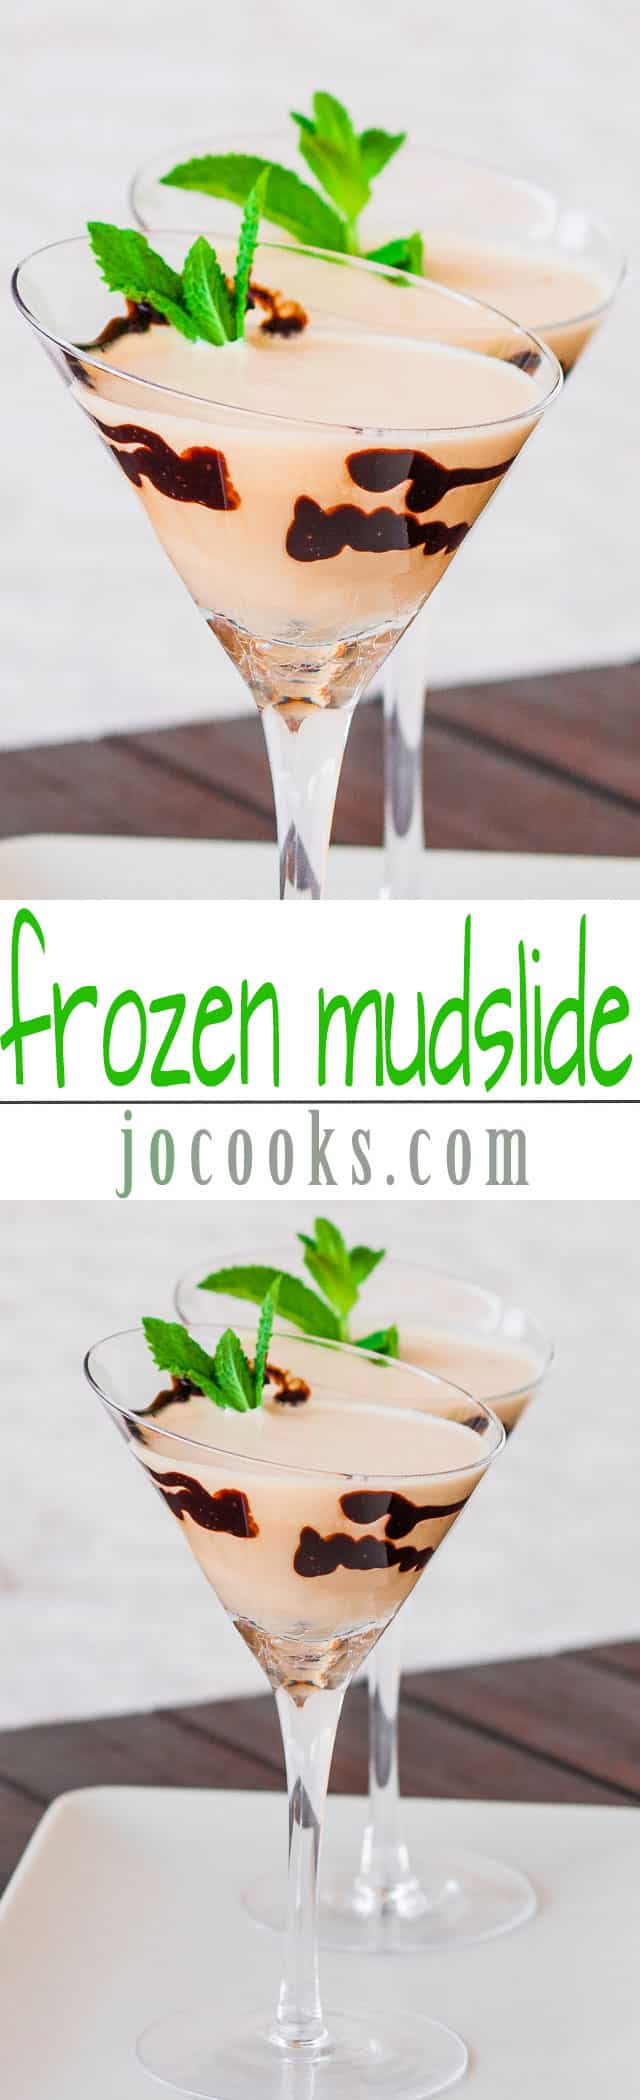 frozen-mudslide-collage